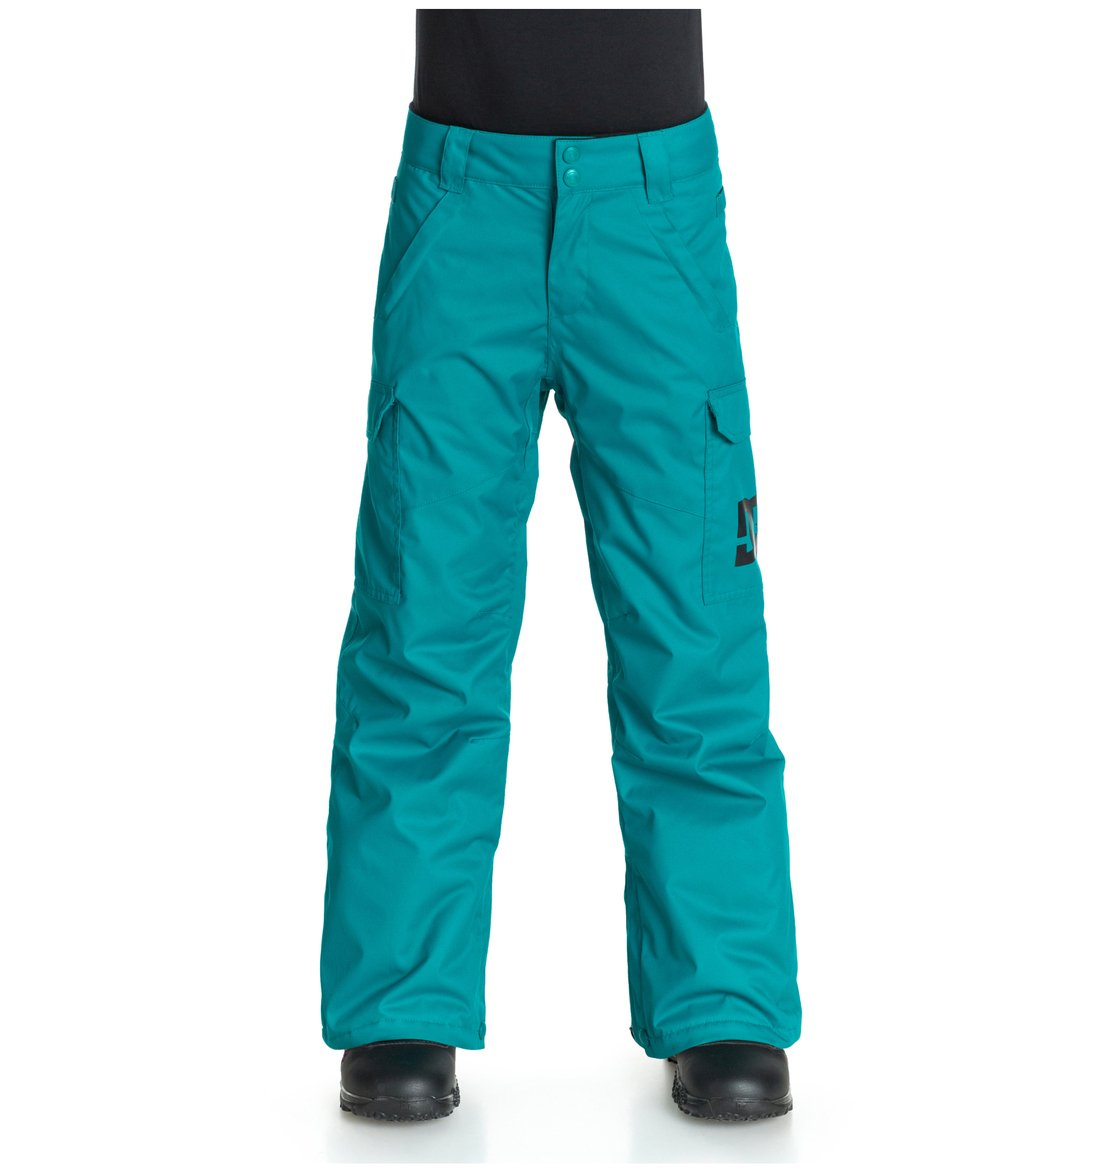 Enjoy Winter Weather in Snow Pants for Boys, Girls, Men & Women Keep active as the snow piles up, and pull on a pair of ski pants or snow pants from DICK'S Sporting Goods to stay warm and dry during prime carving season.